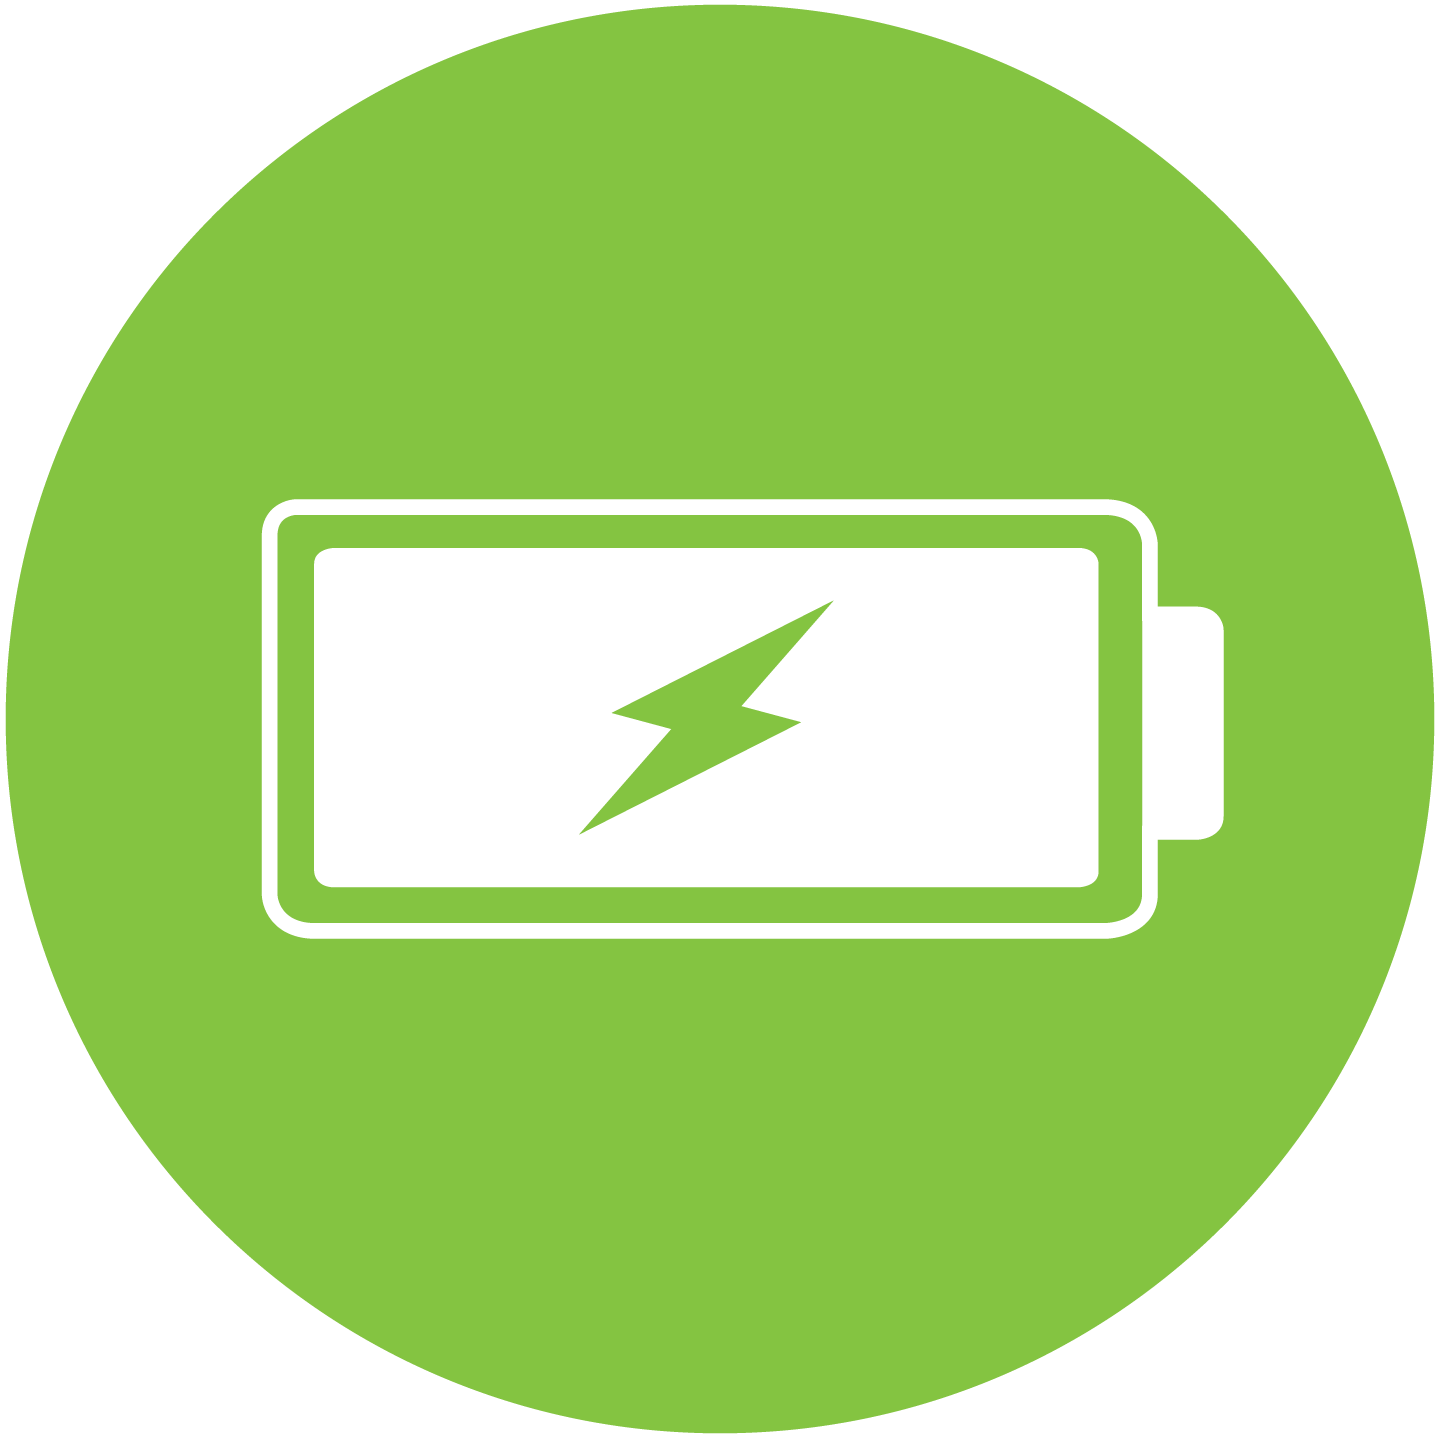 Battery charging png. Transparent images all pic